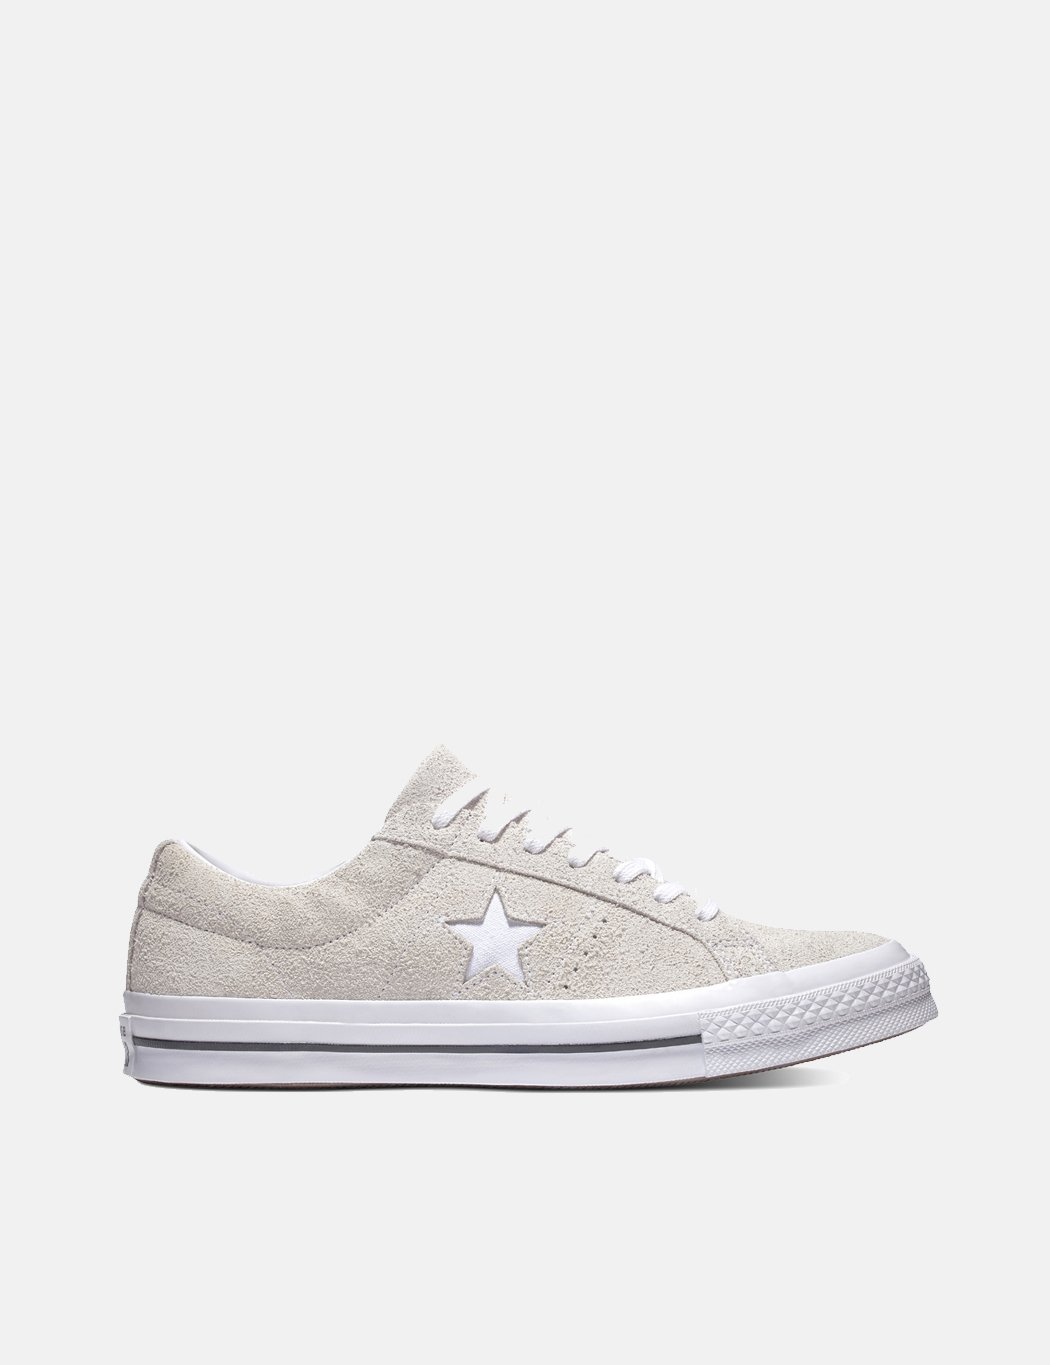 Converse One Star Ox Low Suede (161577C) WhiteWhiteWhite